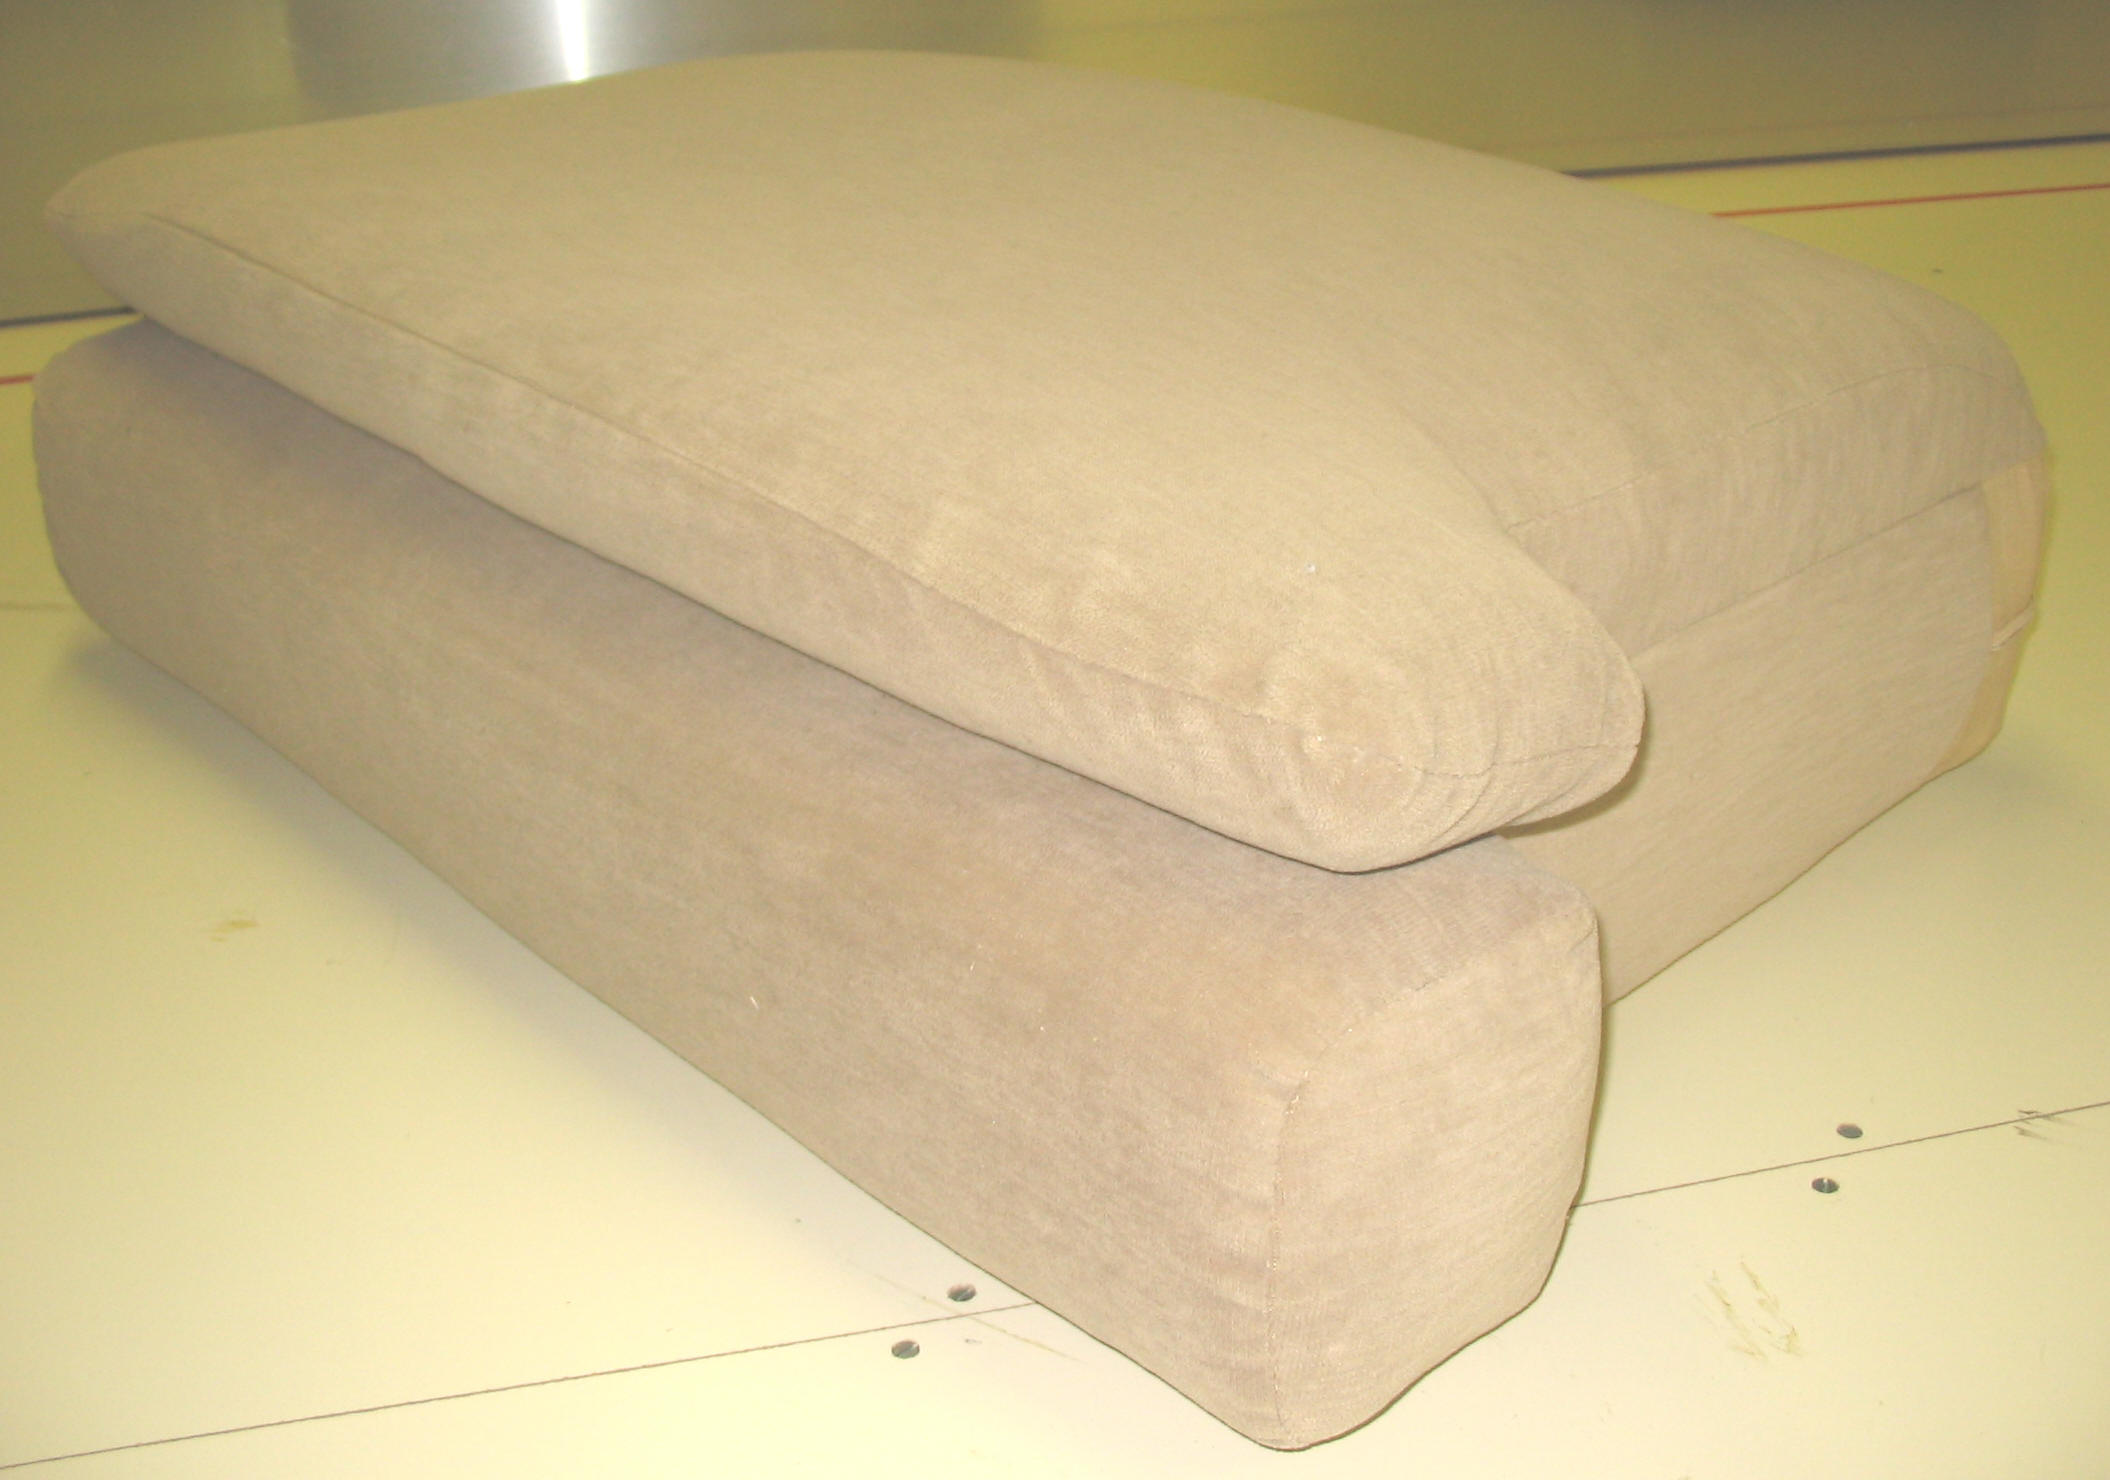 Foam Padding for Sale | High Density Upholstery Foam | High Density Seat Foam